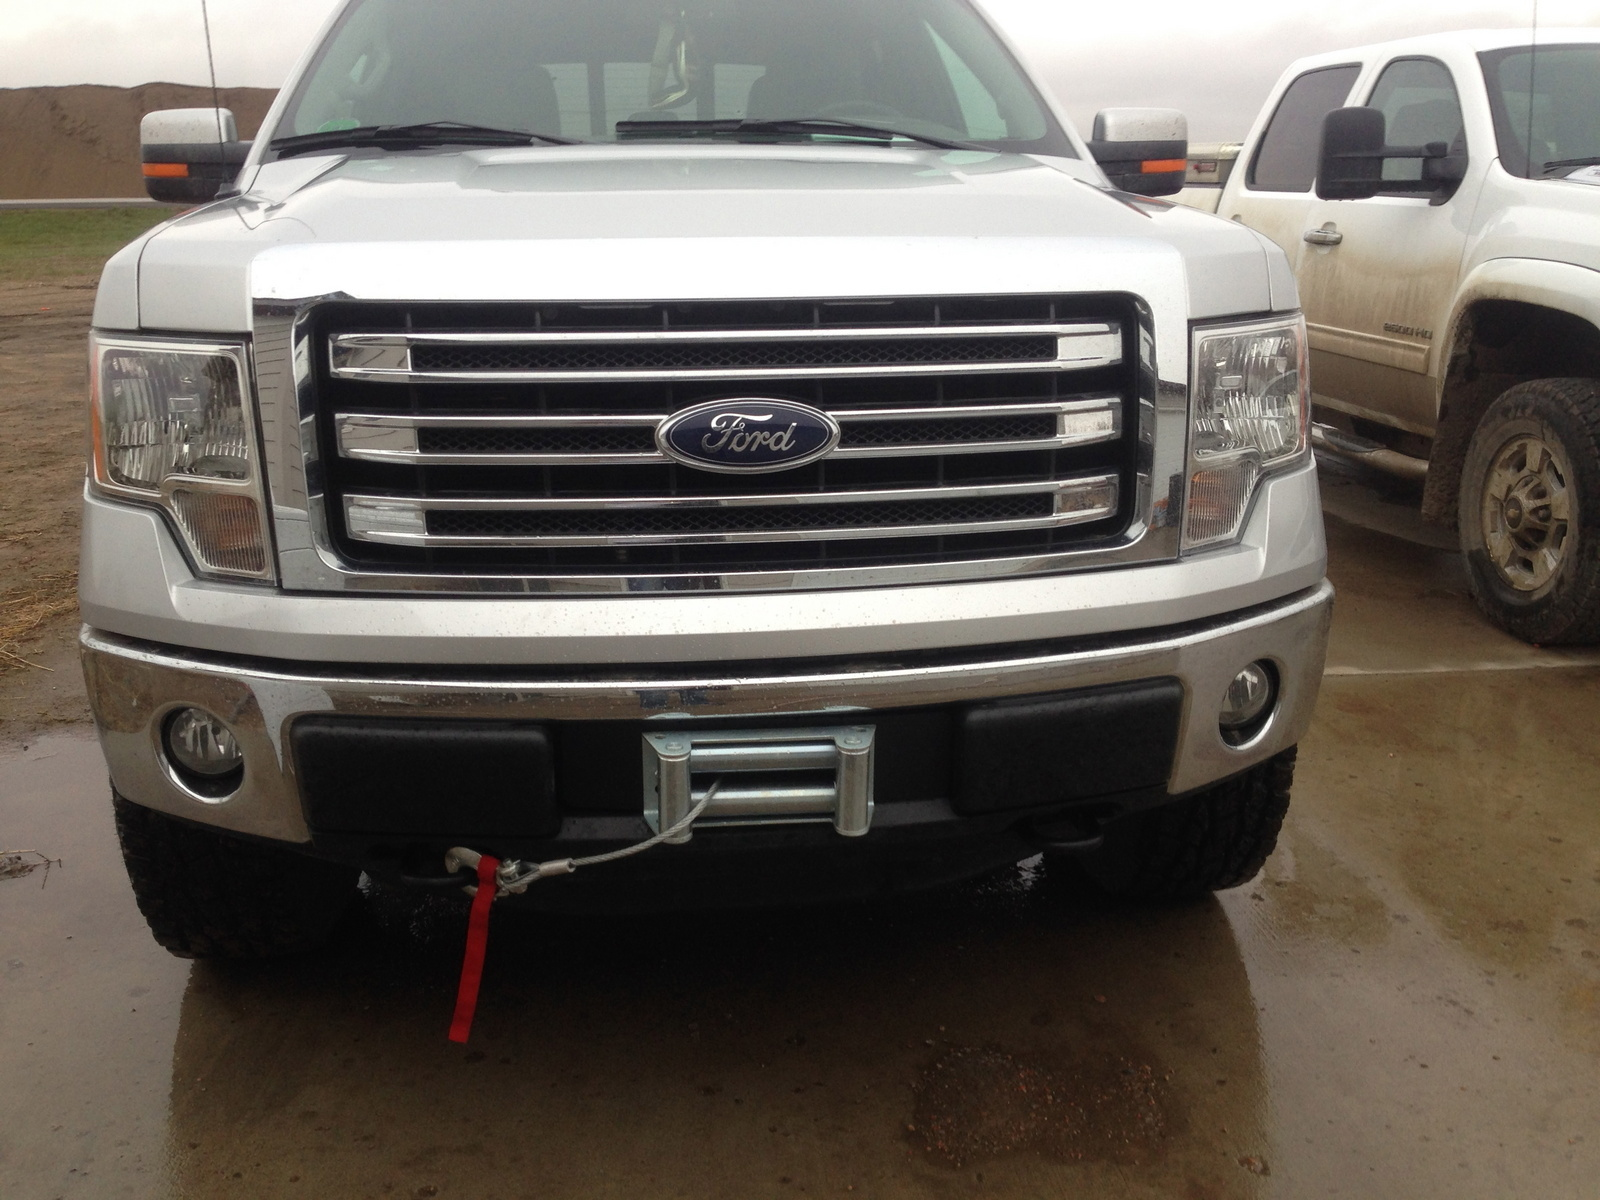 Ford f 150 questions measurements for front bumper cargurus